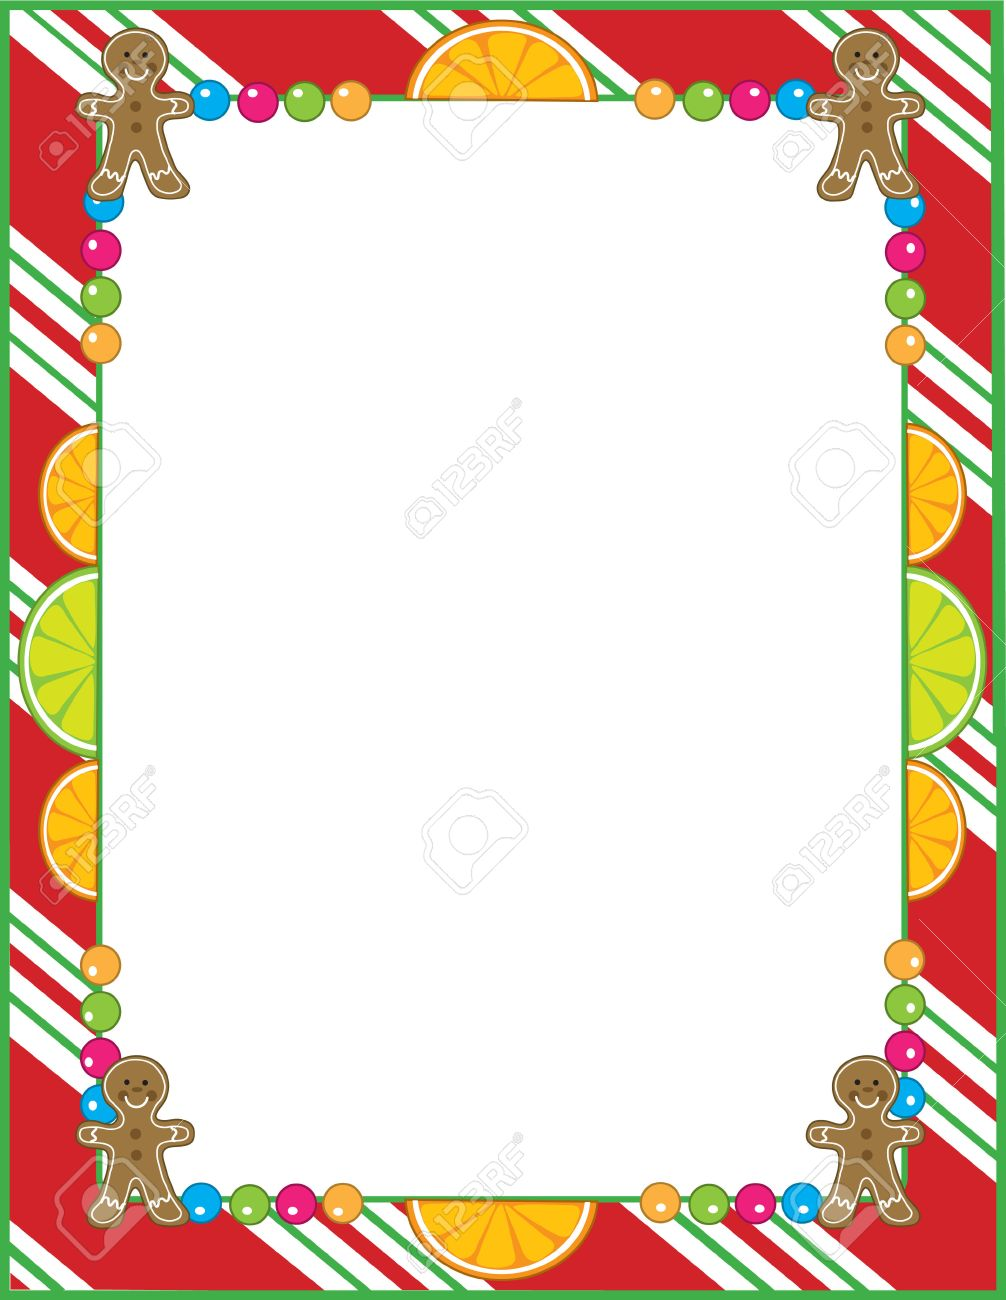 A border or frame featurng Christmas candies like peppermint,fruit slices and gingerbread cookies Stock Vector - 7908620